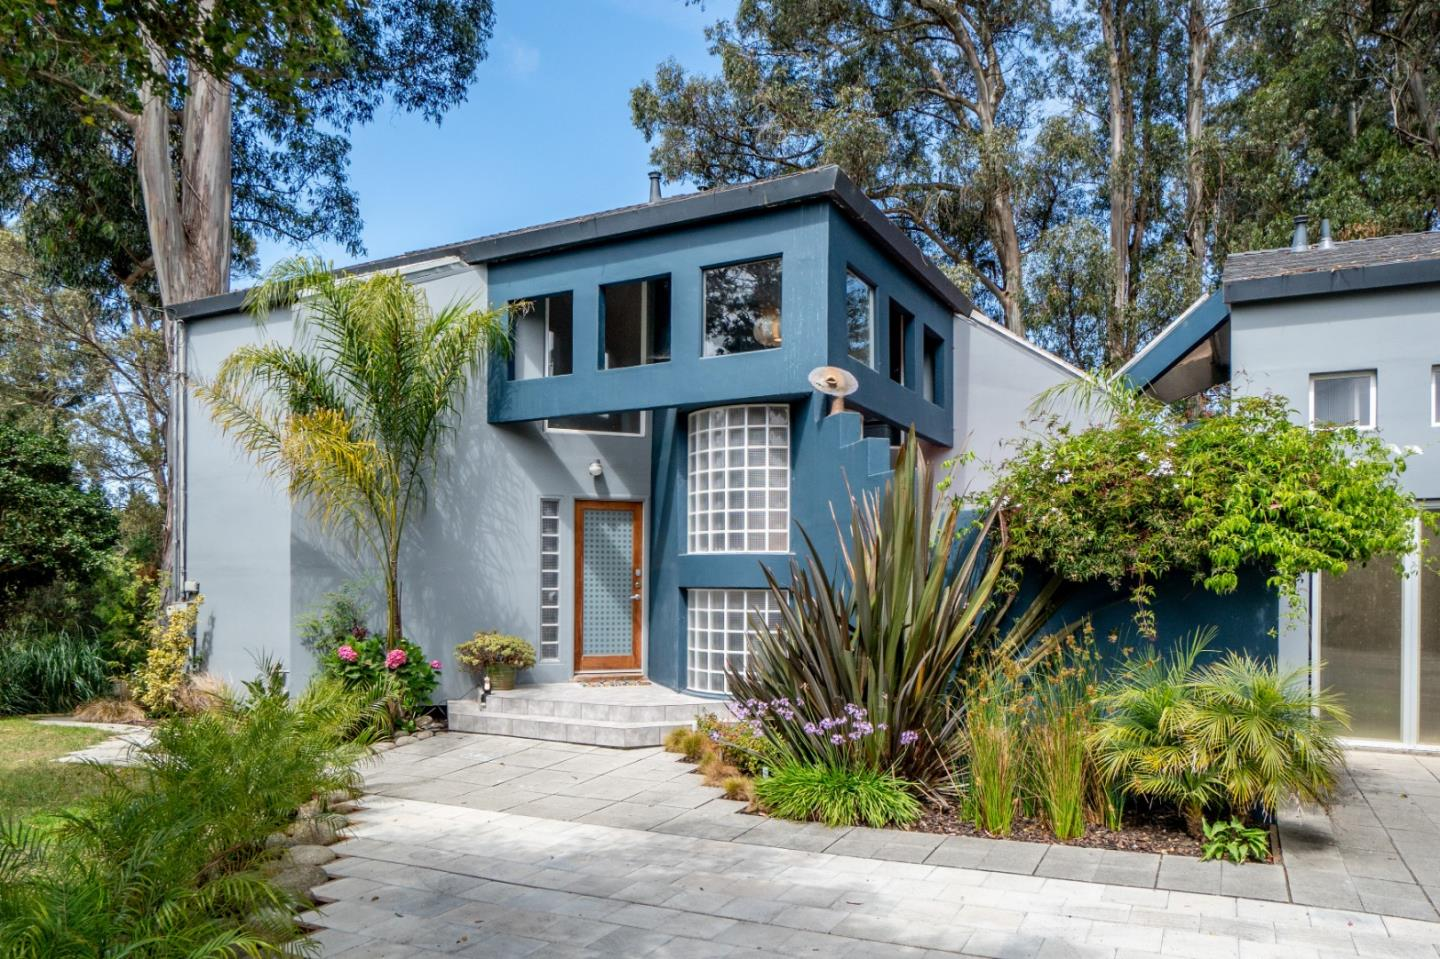 This unique La Selva Beach property makes available over 4000 sf of living and multi-use space through creative interior alterations by the owner/architect. This 9 year old custom built home lives as a 5 bedroom, 5.5 bath. Located less than .5 mile to the private La Selva Beach, Manresa State Beach, or the Village Center. This multi-level home is situated on a double lot with upper and lower driveway access from 2 different streets, allowing for ample off-street parking. Multiple entertaining spaces include decks on all 3 levels, private courtyard and sheltered lawn area bordered by lush landscaping. The living room features 12-ft ceilings, gas fireplace, large custom skylights and direct access to outdoor spaces. The entire upper floor is a fabulous master suite with a foyer opening to a large private deck with beautiful panoramic views, dressing room with ample closet space, separate his/hers vanities and freestanding tub with wine refrigerator for a private retreat in your own home.